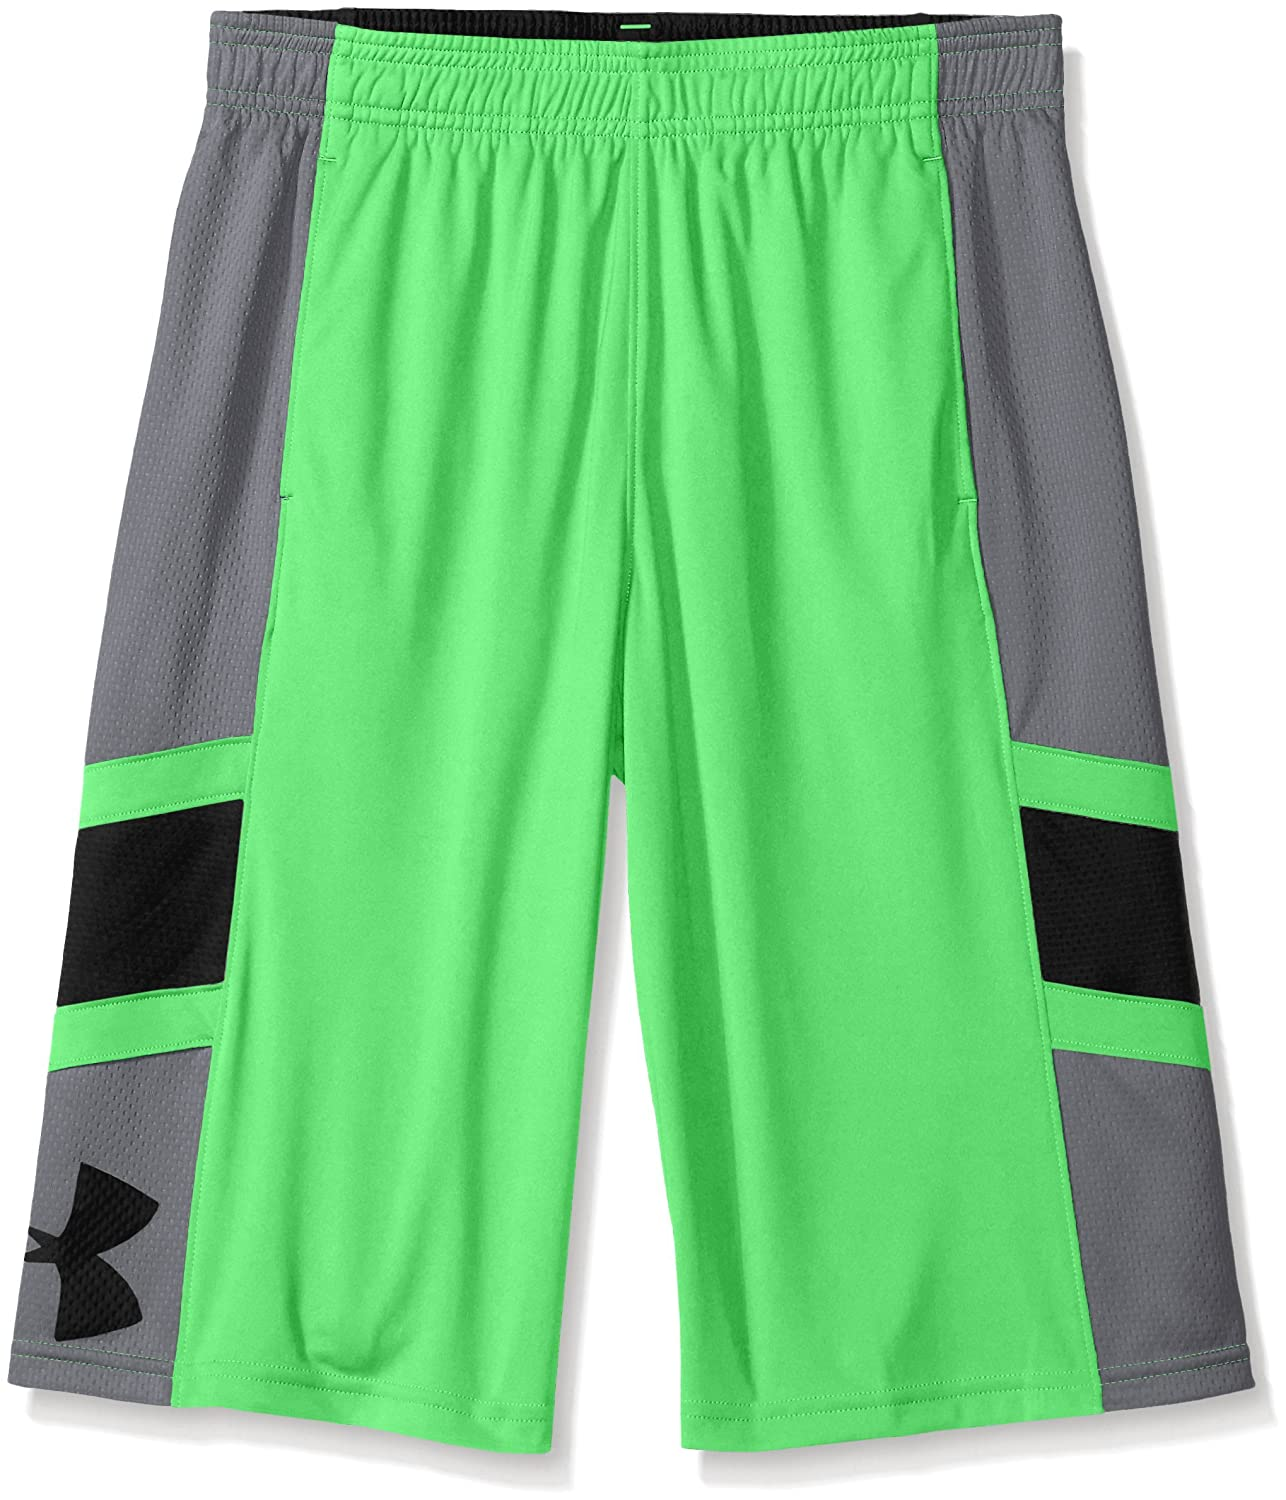 Under Armour Boys' Crossover Basketball Shorts, Laser Green (387)/Black, Youth X-Large Under Armour Apparel 1273446